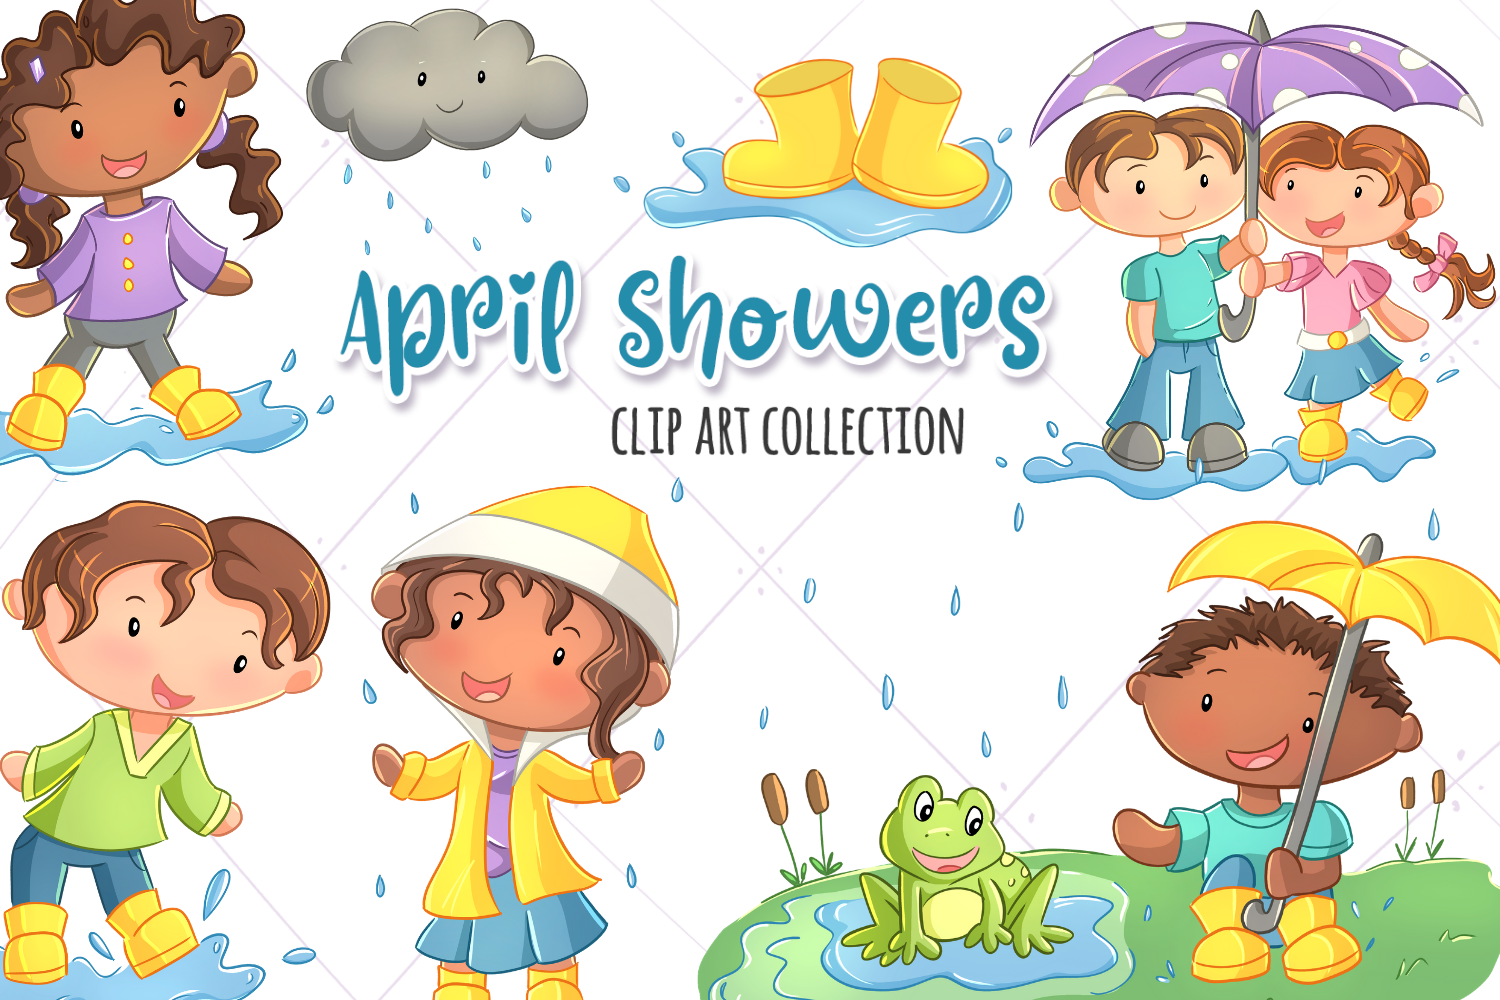 April Showers Clip Art Collection example image 1